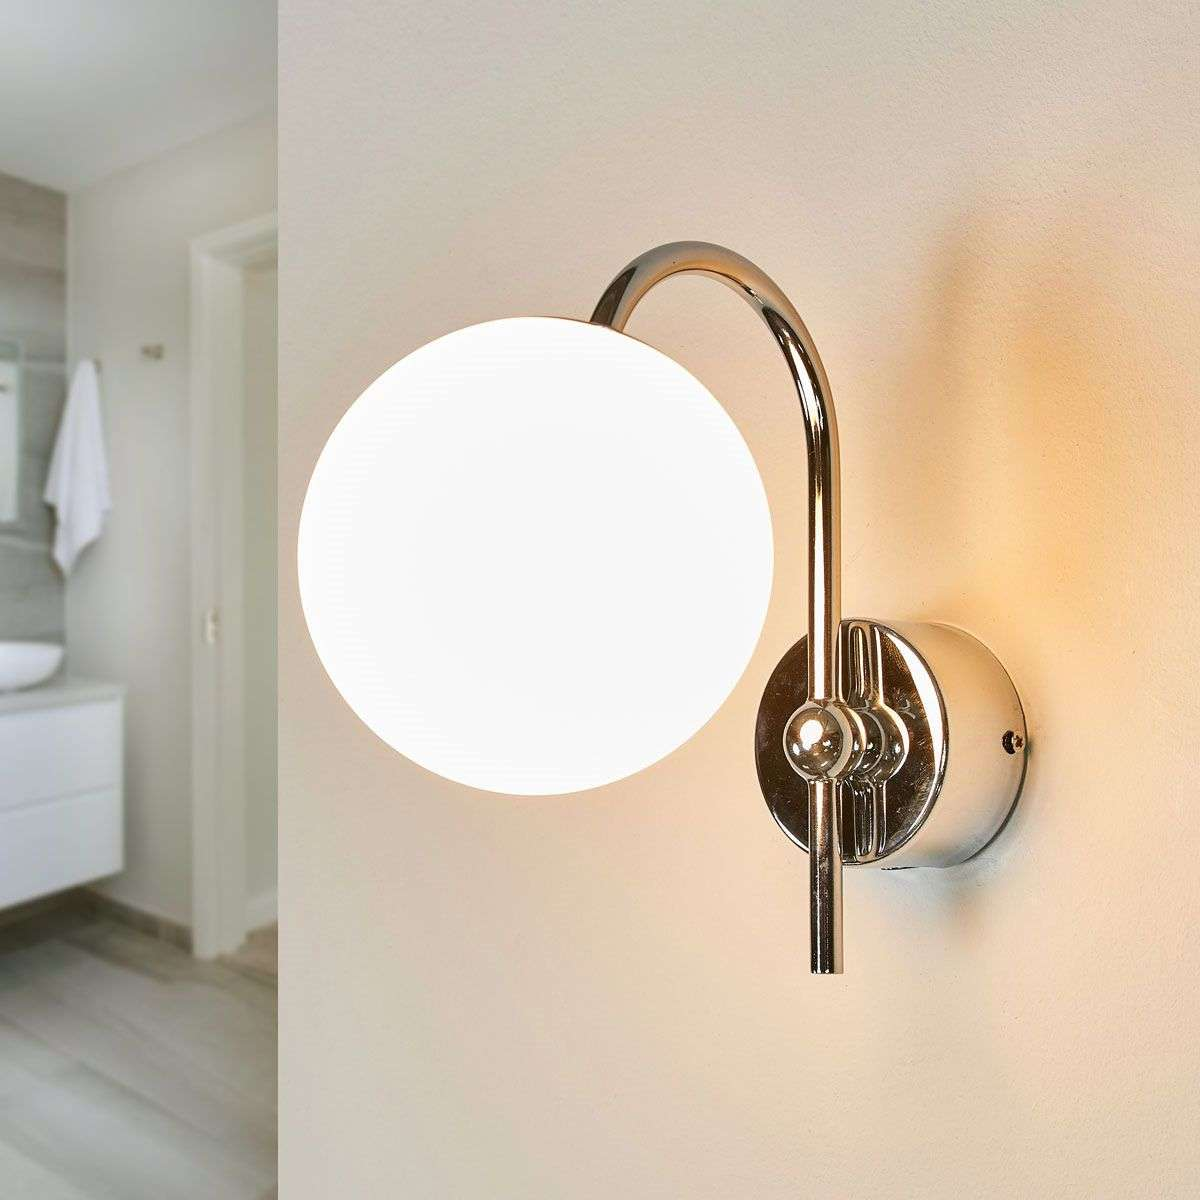 Acquista Applique per bagno Crystal IP44 | Lampade.it